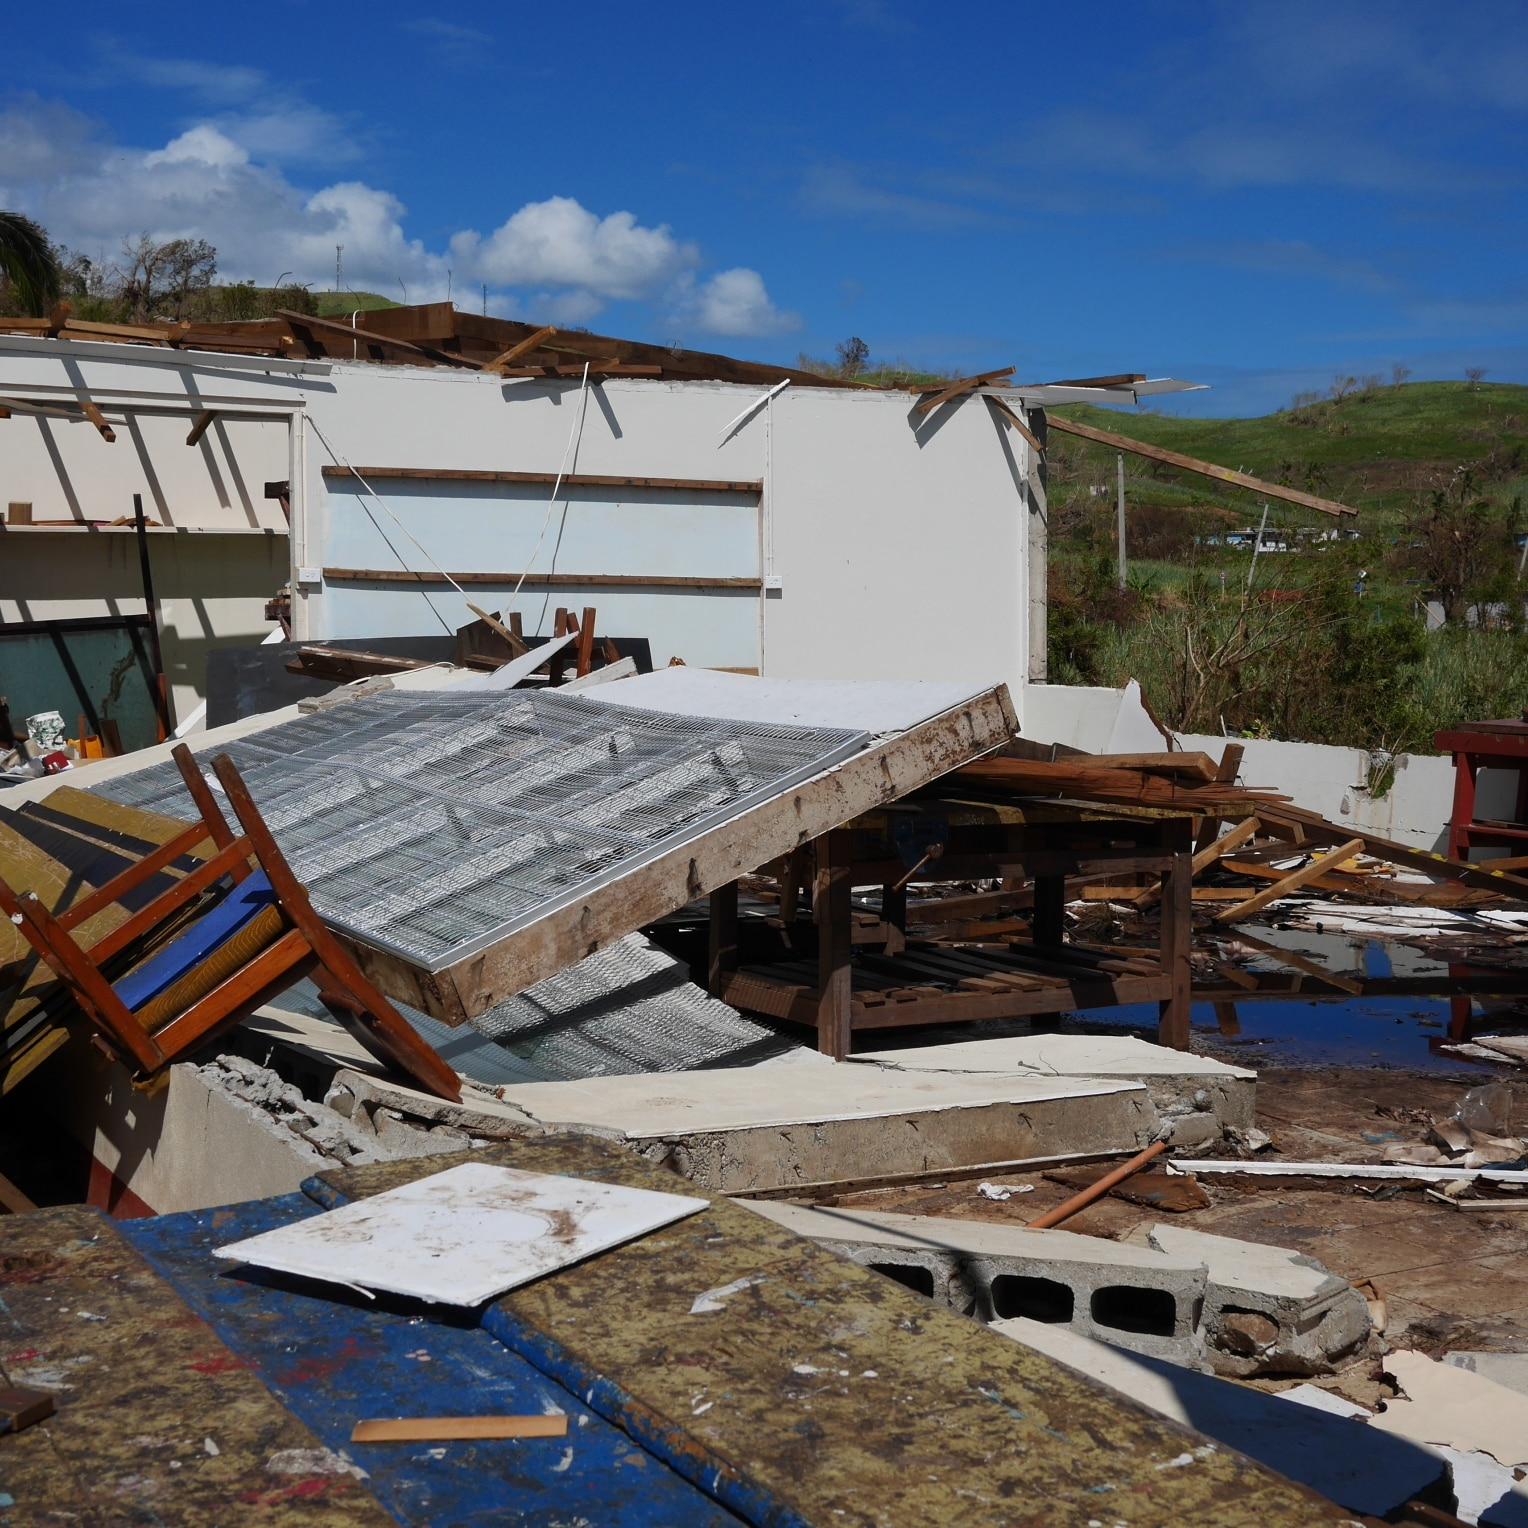 Damage from the cyclone in Fiji